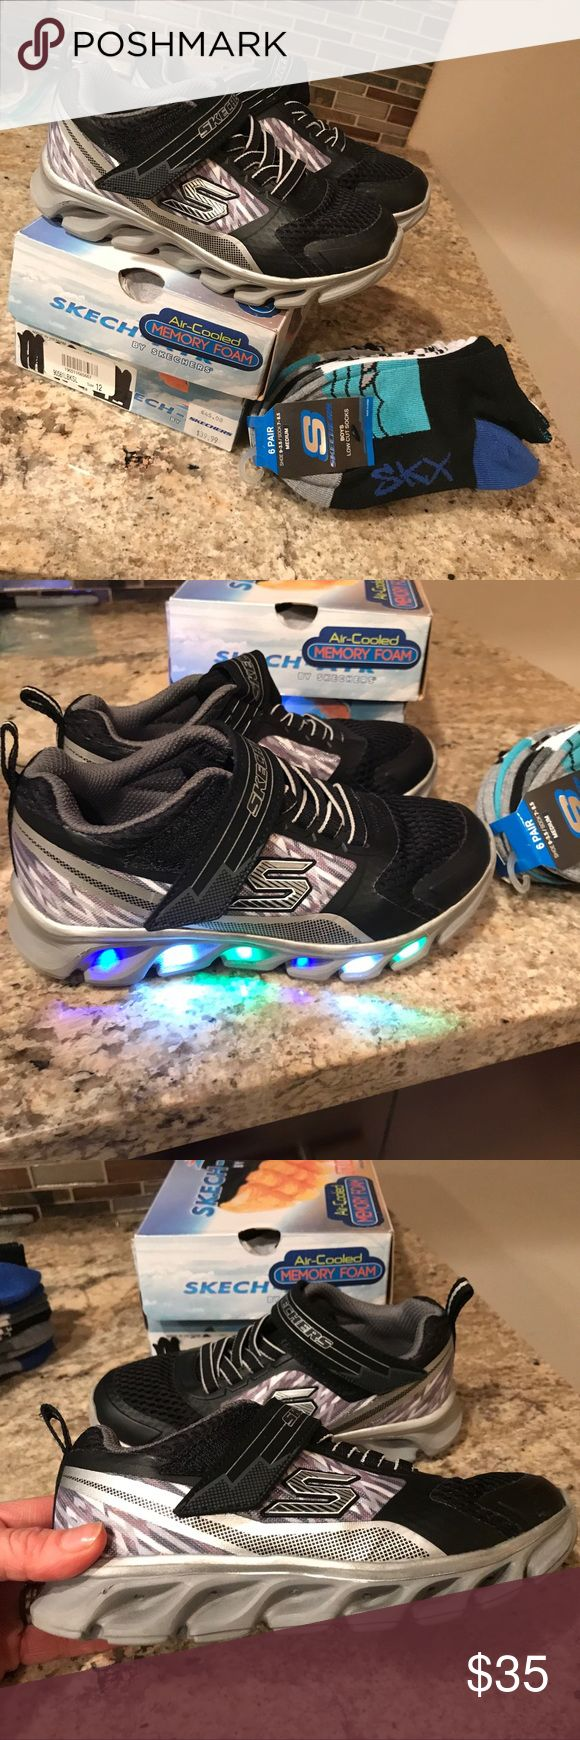 "Skechers light up sneakers boys size 12 & socks Super cute Skechers boys light up sneakers. Size 12  Bought this past December at sketchers store and wore on vacation.   ( bought 12 & 12.5 at time ) now after a month my son likes the bigger ones better🤭😌! (Of course that always seem to happen lol) also included 6 pack of Skechers skx sporty detailed socks shoe size 9.5-size 3 which I got on sale in the store for 11.00 for the 6 pack! They are low rise socks and your little ""big "" boy with…"